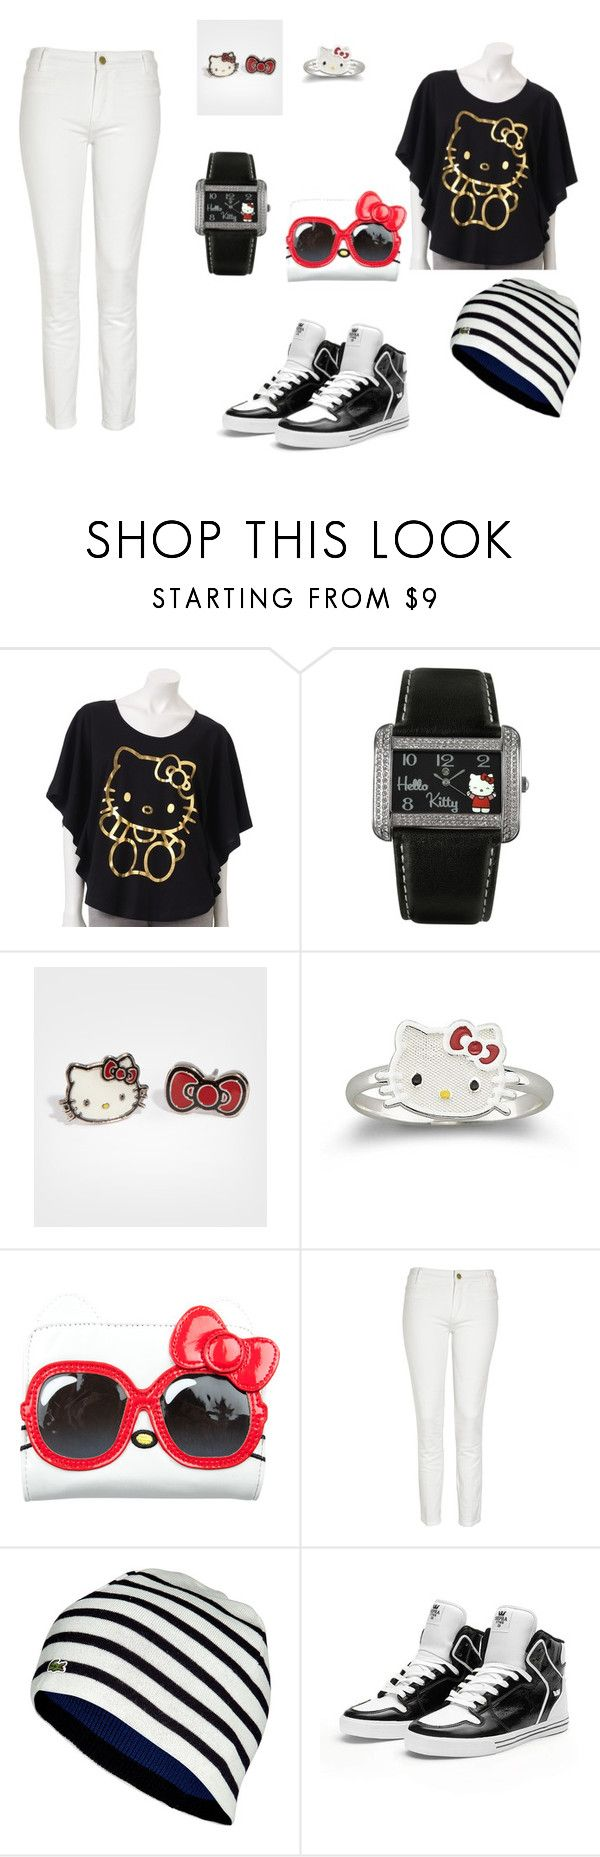 """hello kitty outfit"" by still-into-malik ❤ liked on Polyvore featuring Hello Kitty, M.i.h Jeans, Lacoste and Supra"